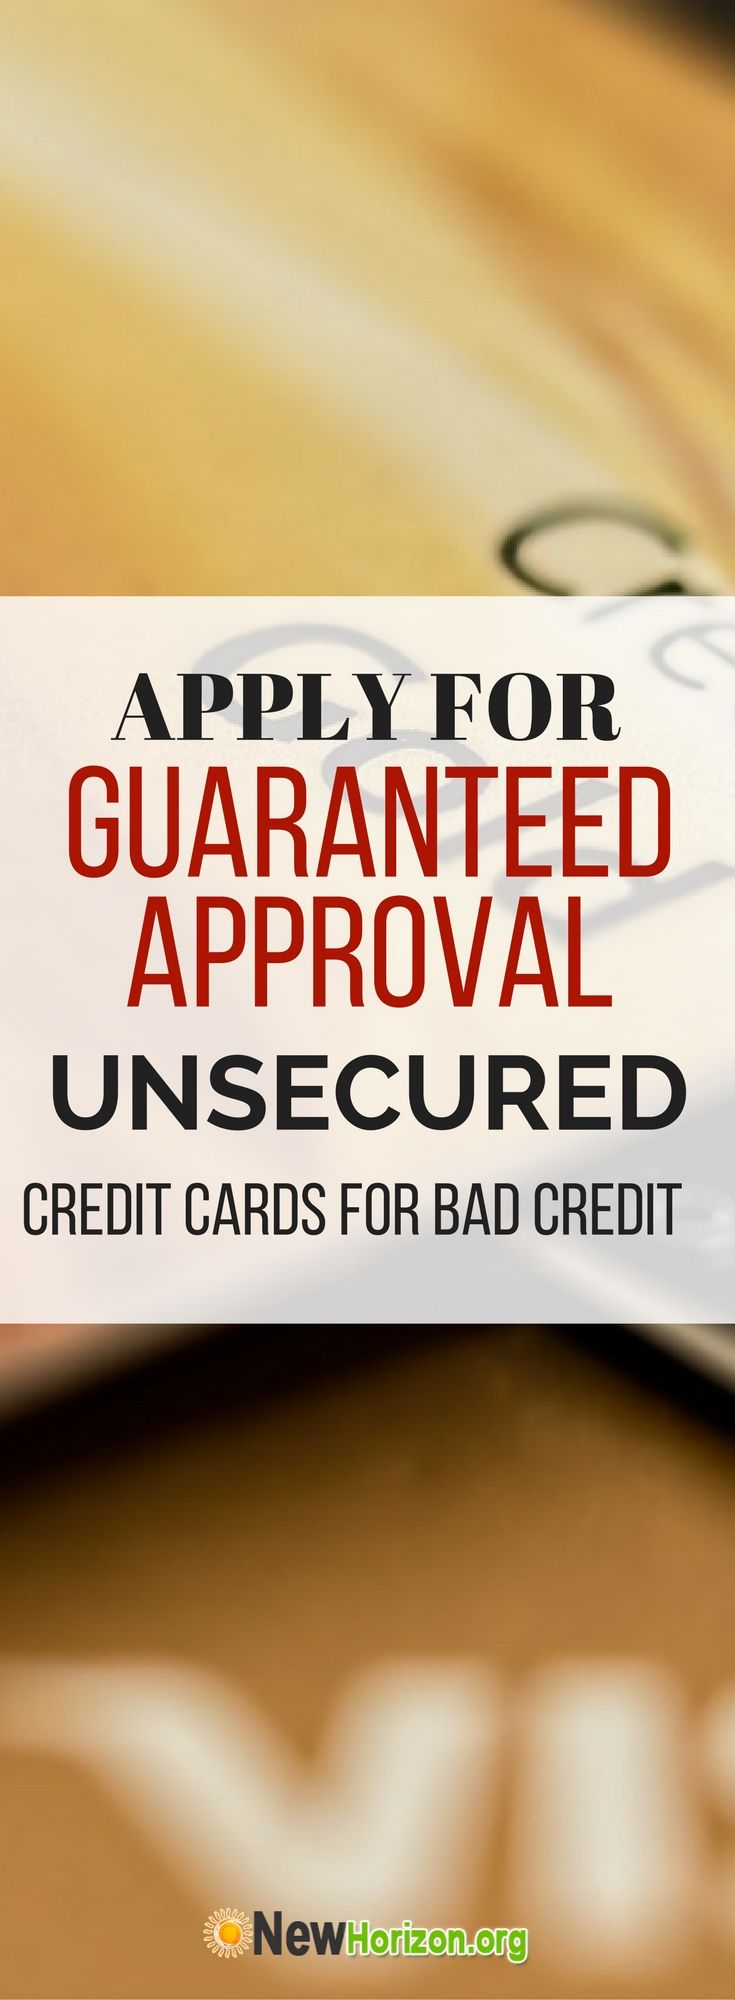 guaranteed approval unsecured credit cards - 3